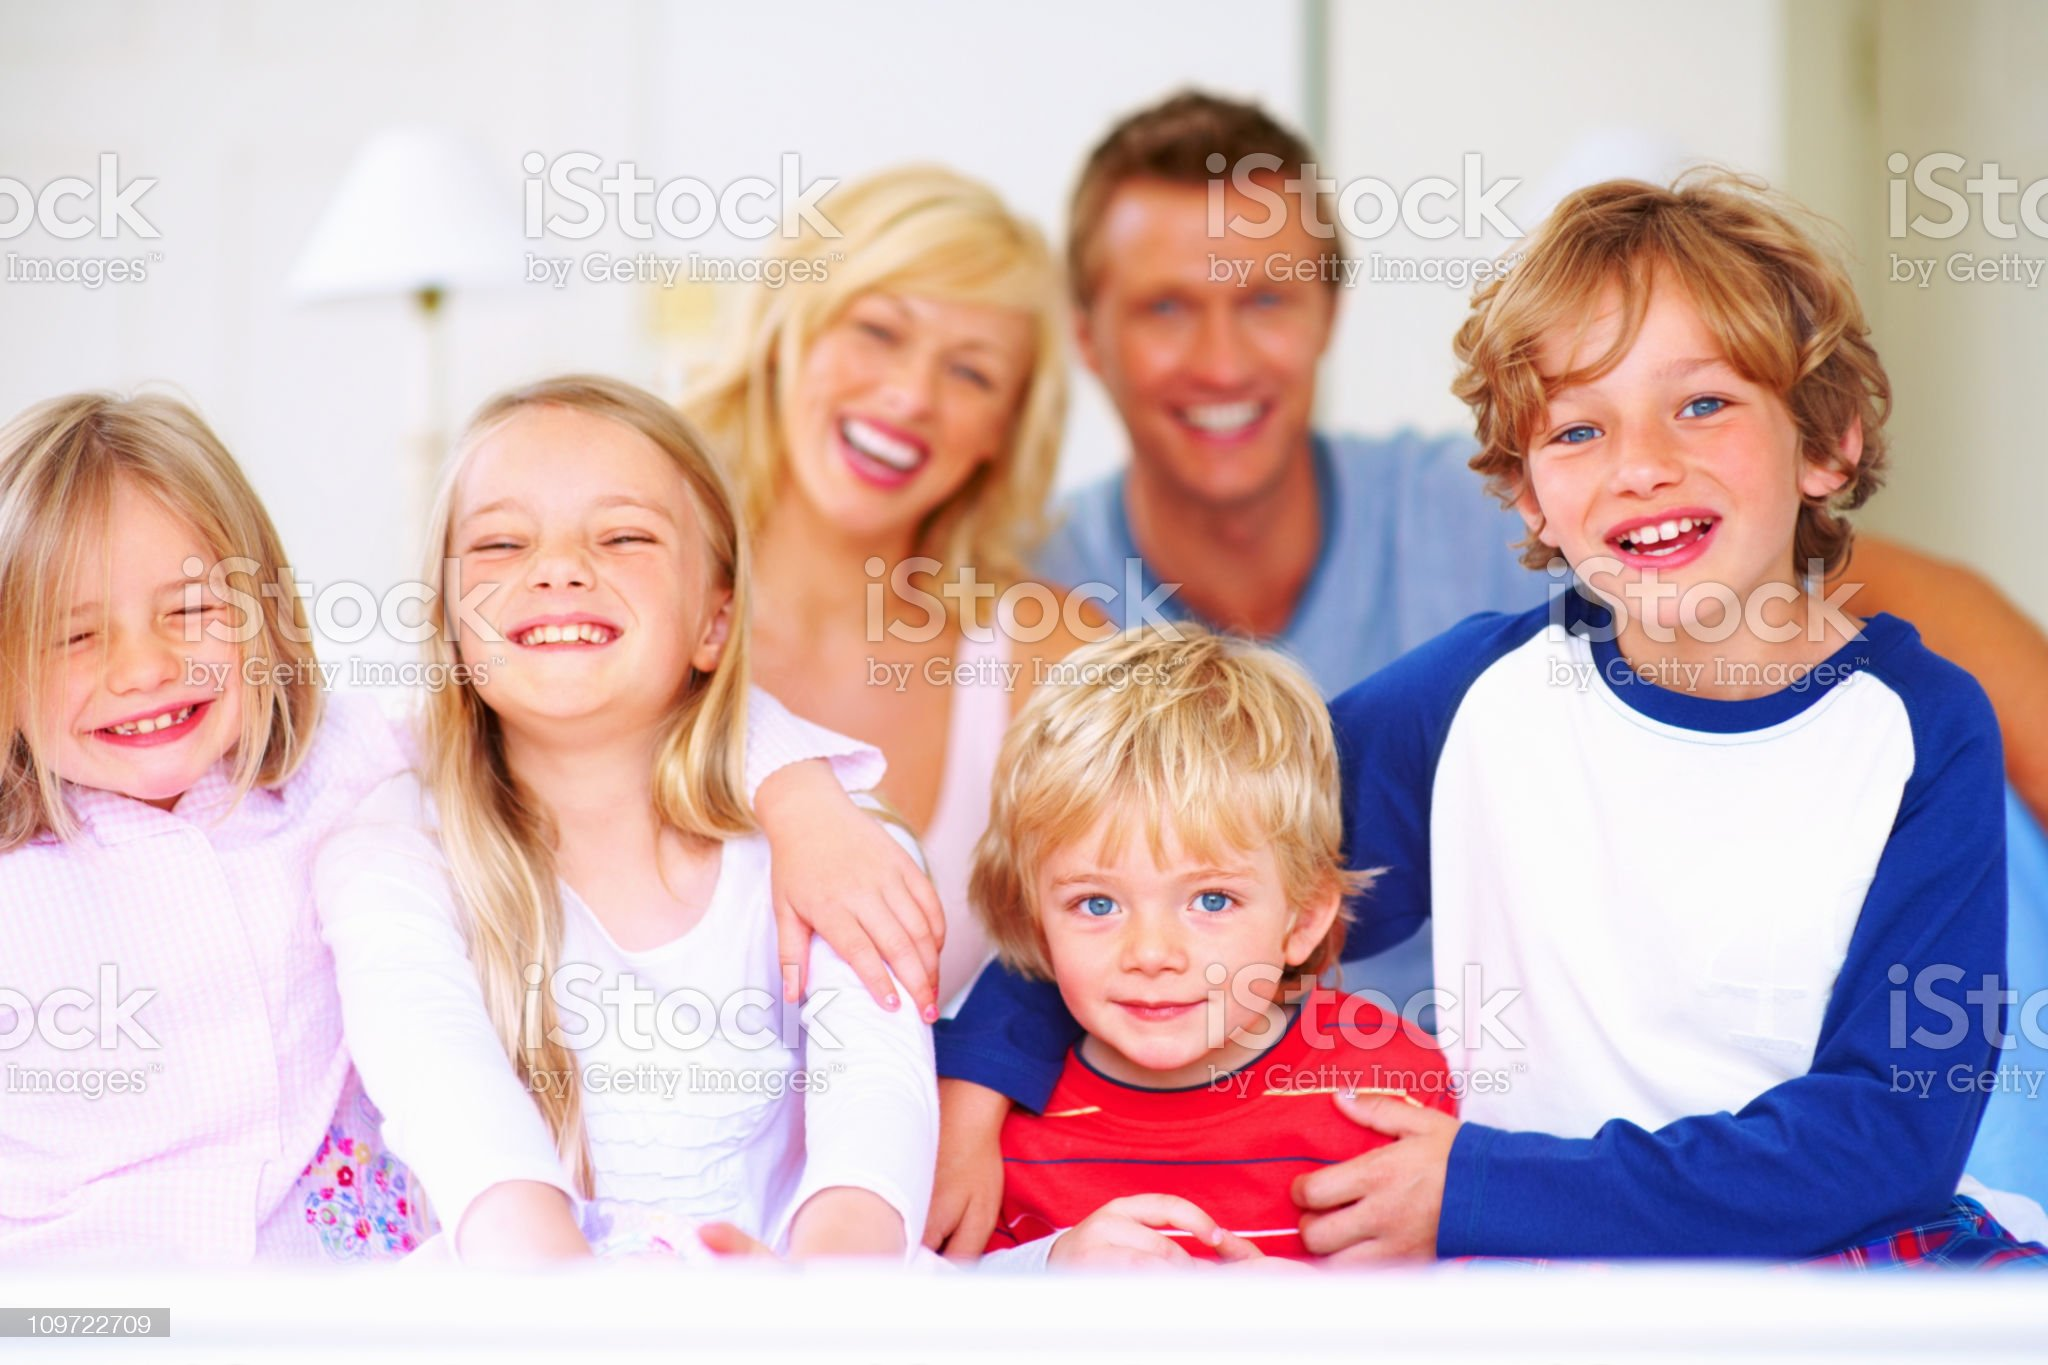 Happy family - Smiling middle aged couple with their children royalty-free stock photo